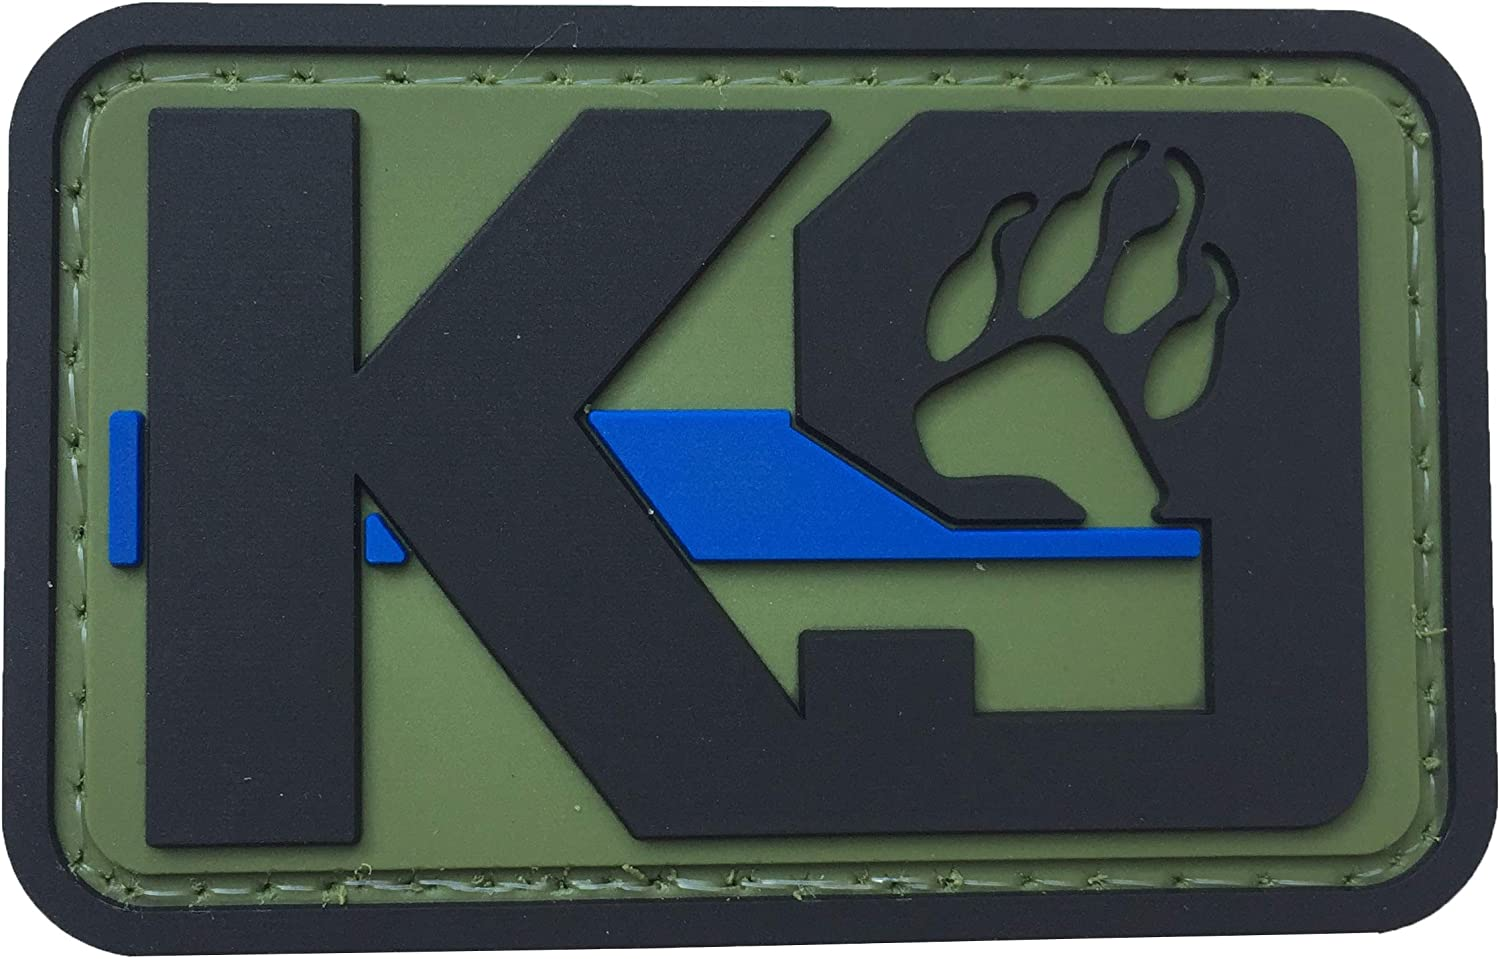 K9 Dog Paw Patch PVC San Francisco Mall Rubber Morale Law Police Max 88% OFF Enforceme Tactical